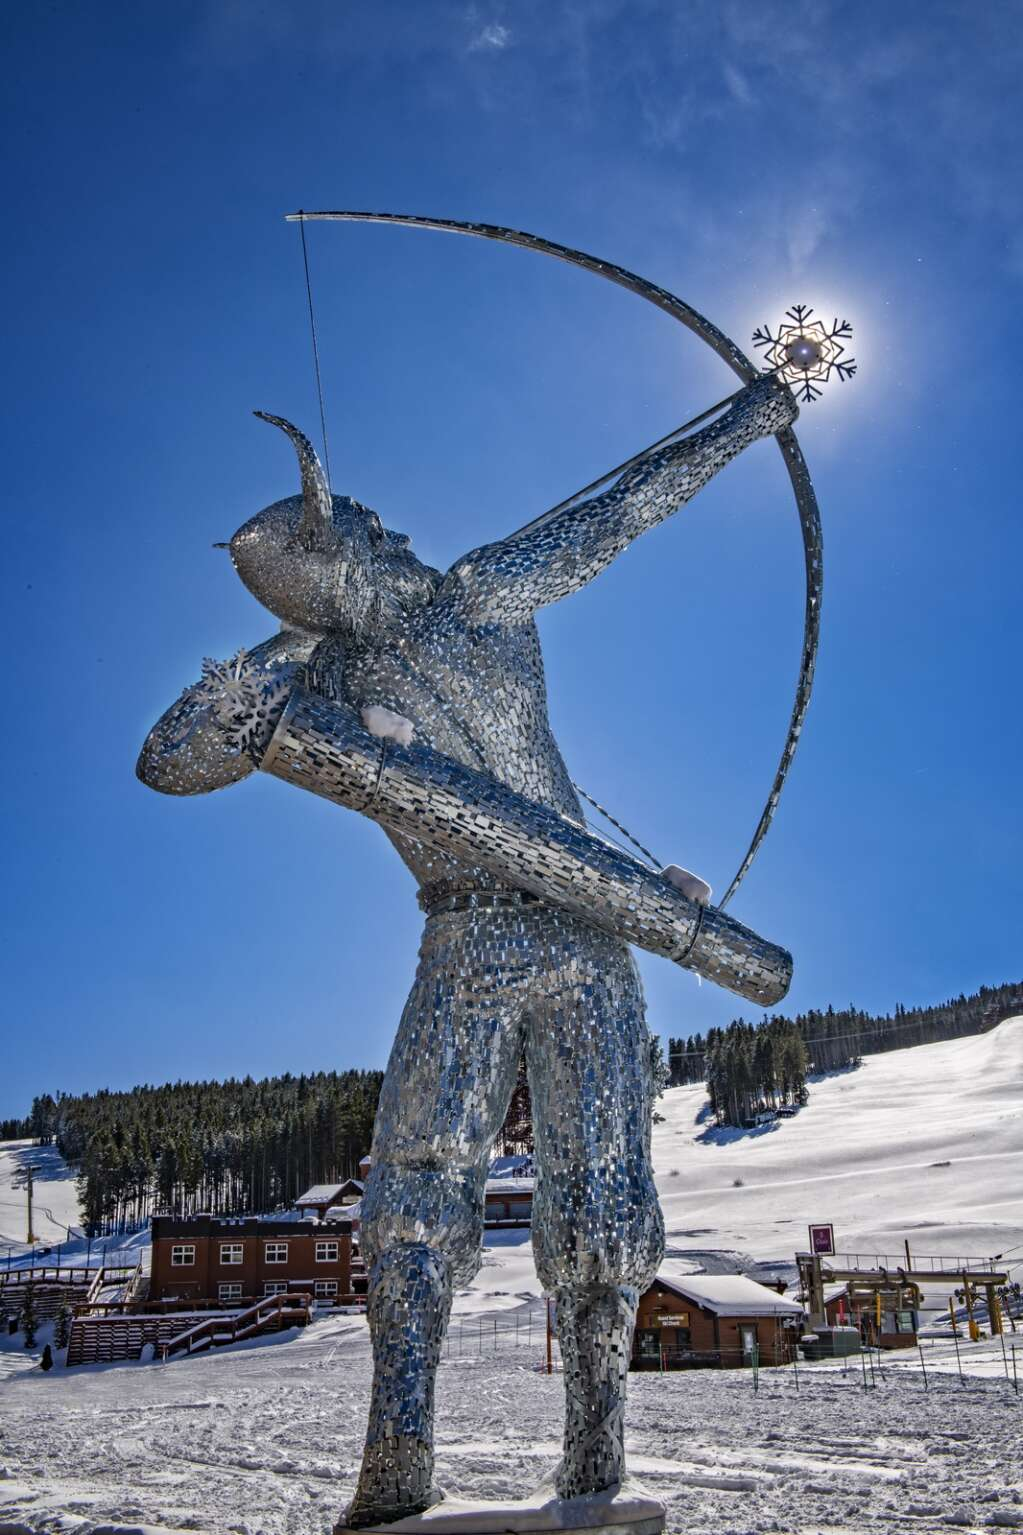 The sculpture of Ullr stands at the base of Peak 8 in front of the Grand Colorado on Peak 8 resort. | Photo by Carl Scofield / Breckenridge Grand Vacations